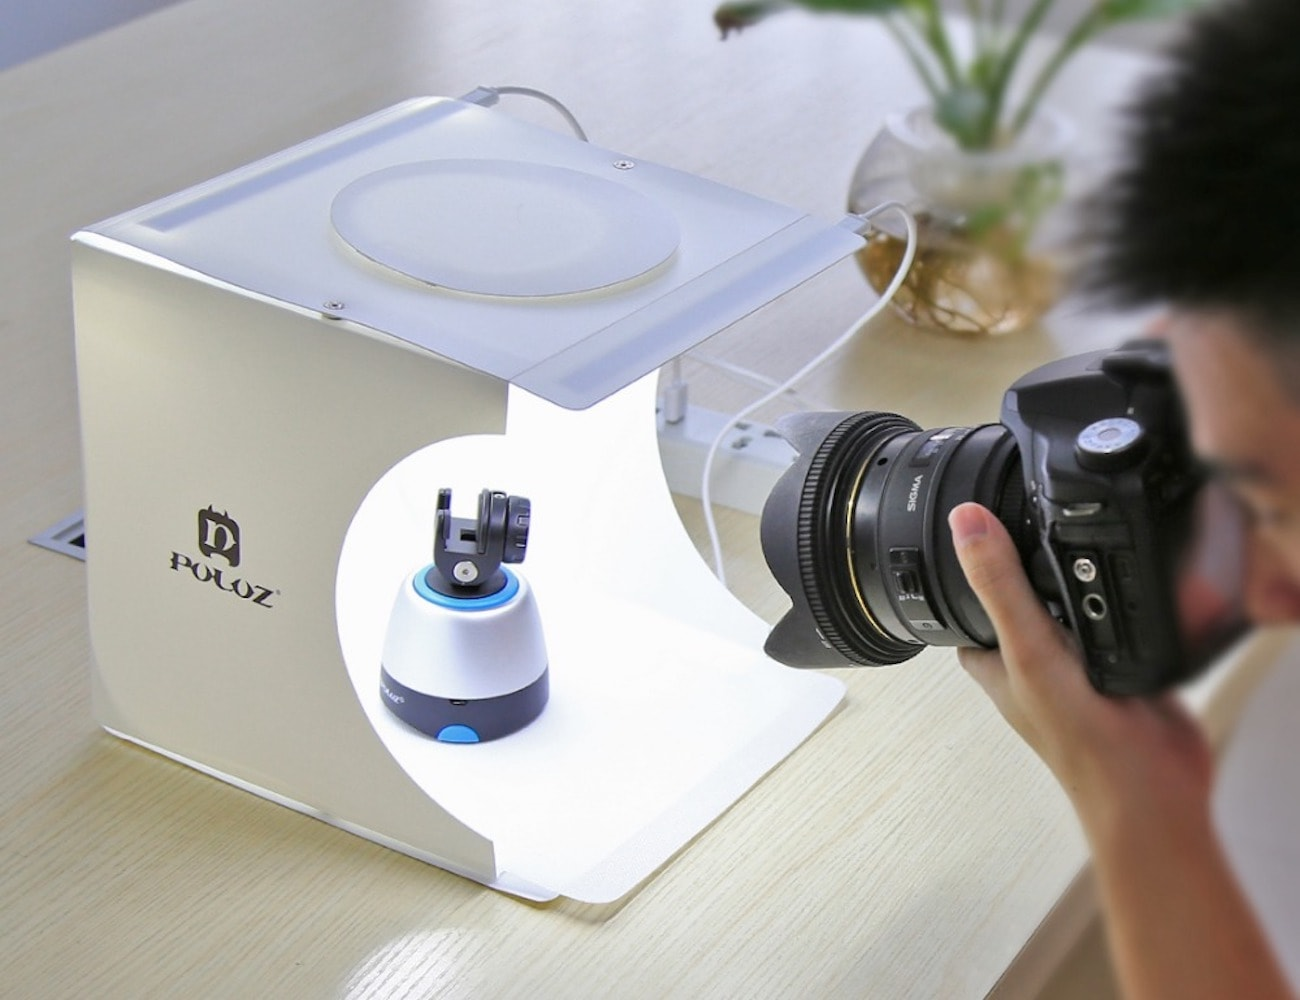 Foldable Photo Studio Lightbox sets up in seconds